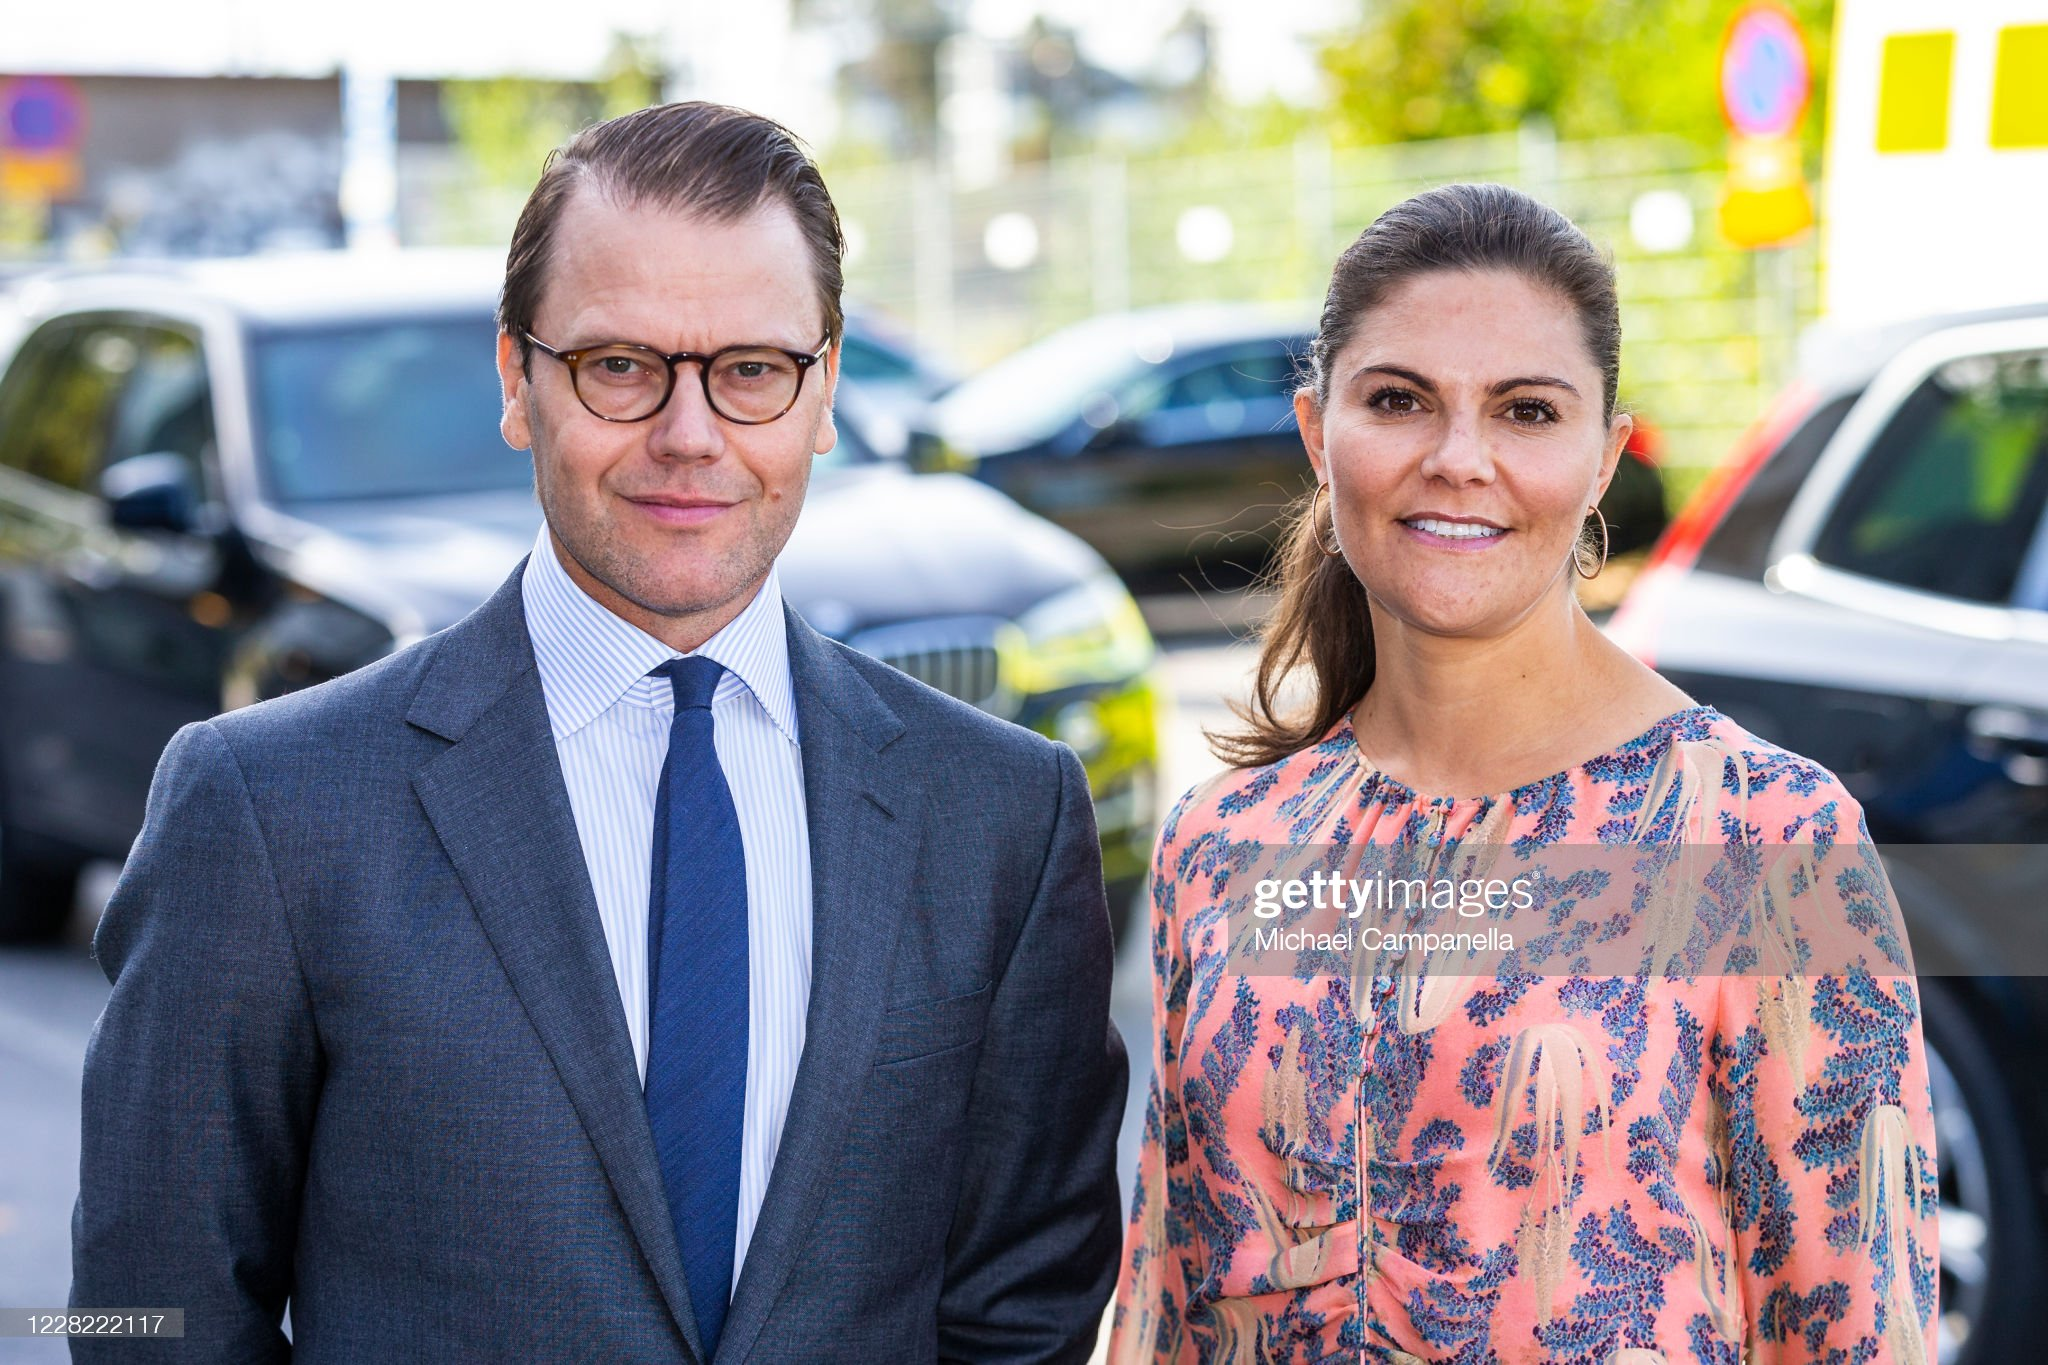 crown-princess-victoria-and-prince-daniel-of-sweden-visit-an-station-picture-id1228222117